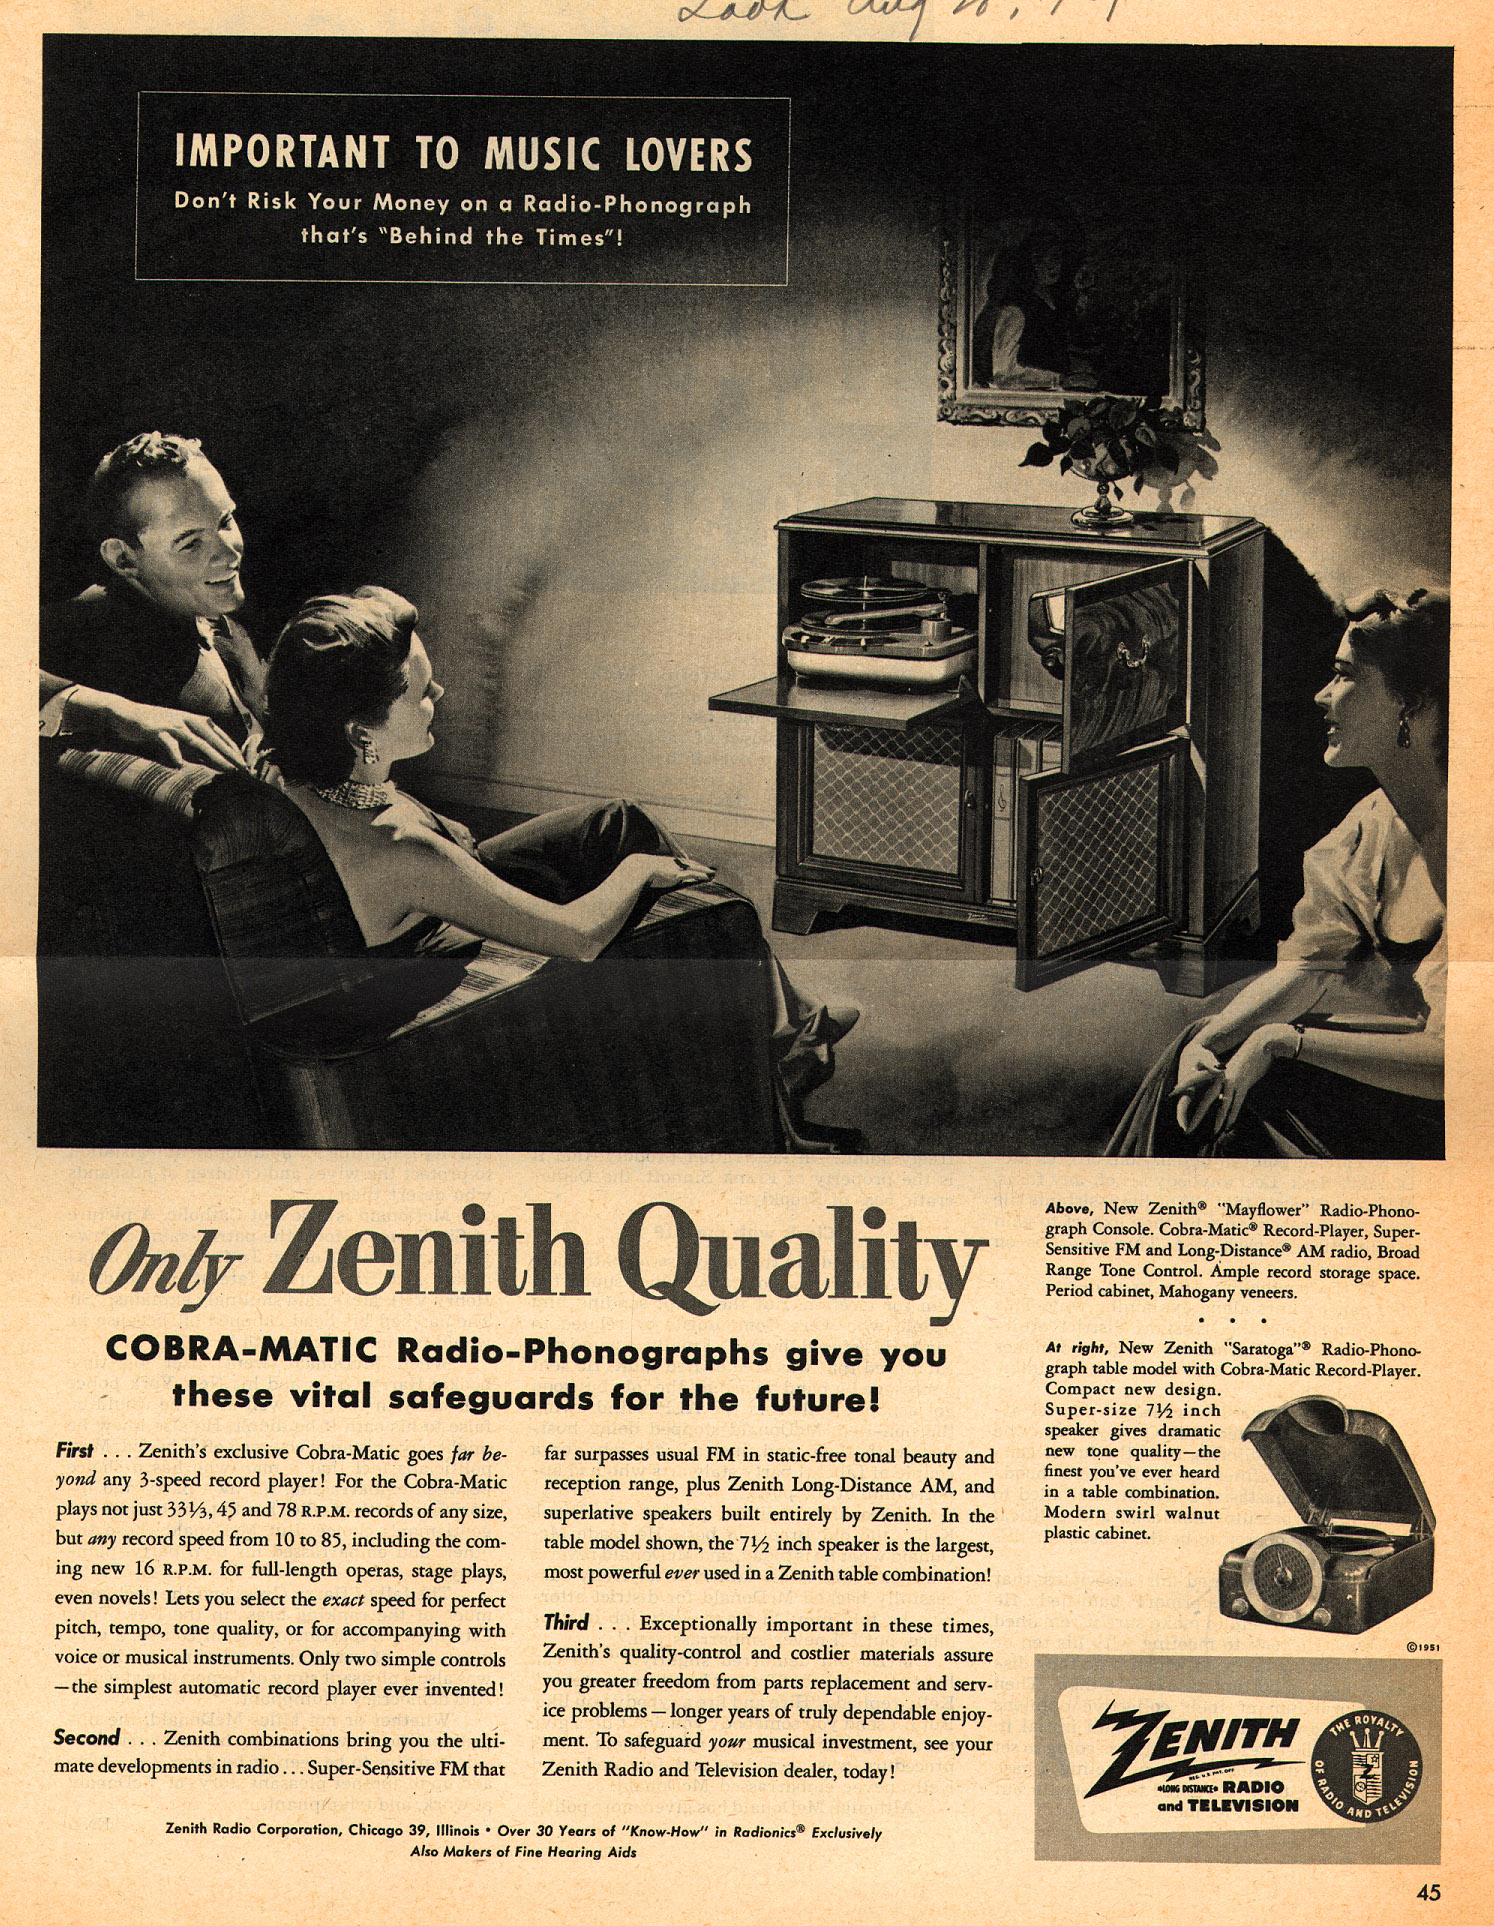 Only_Zenith_Quality_Cobra-Matic_Radio-Phonographs...